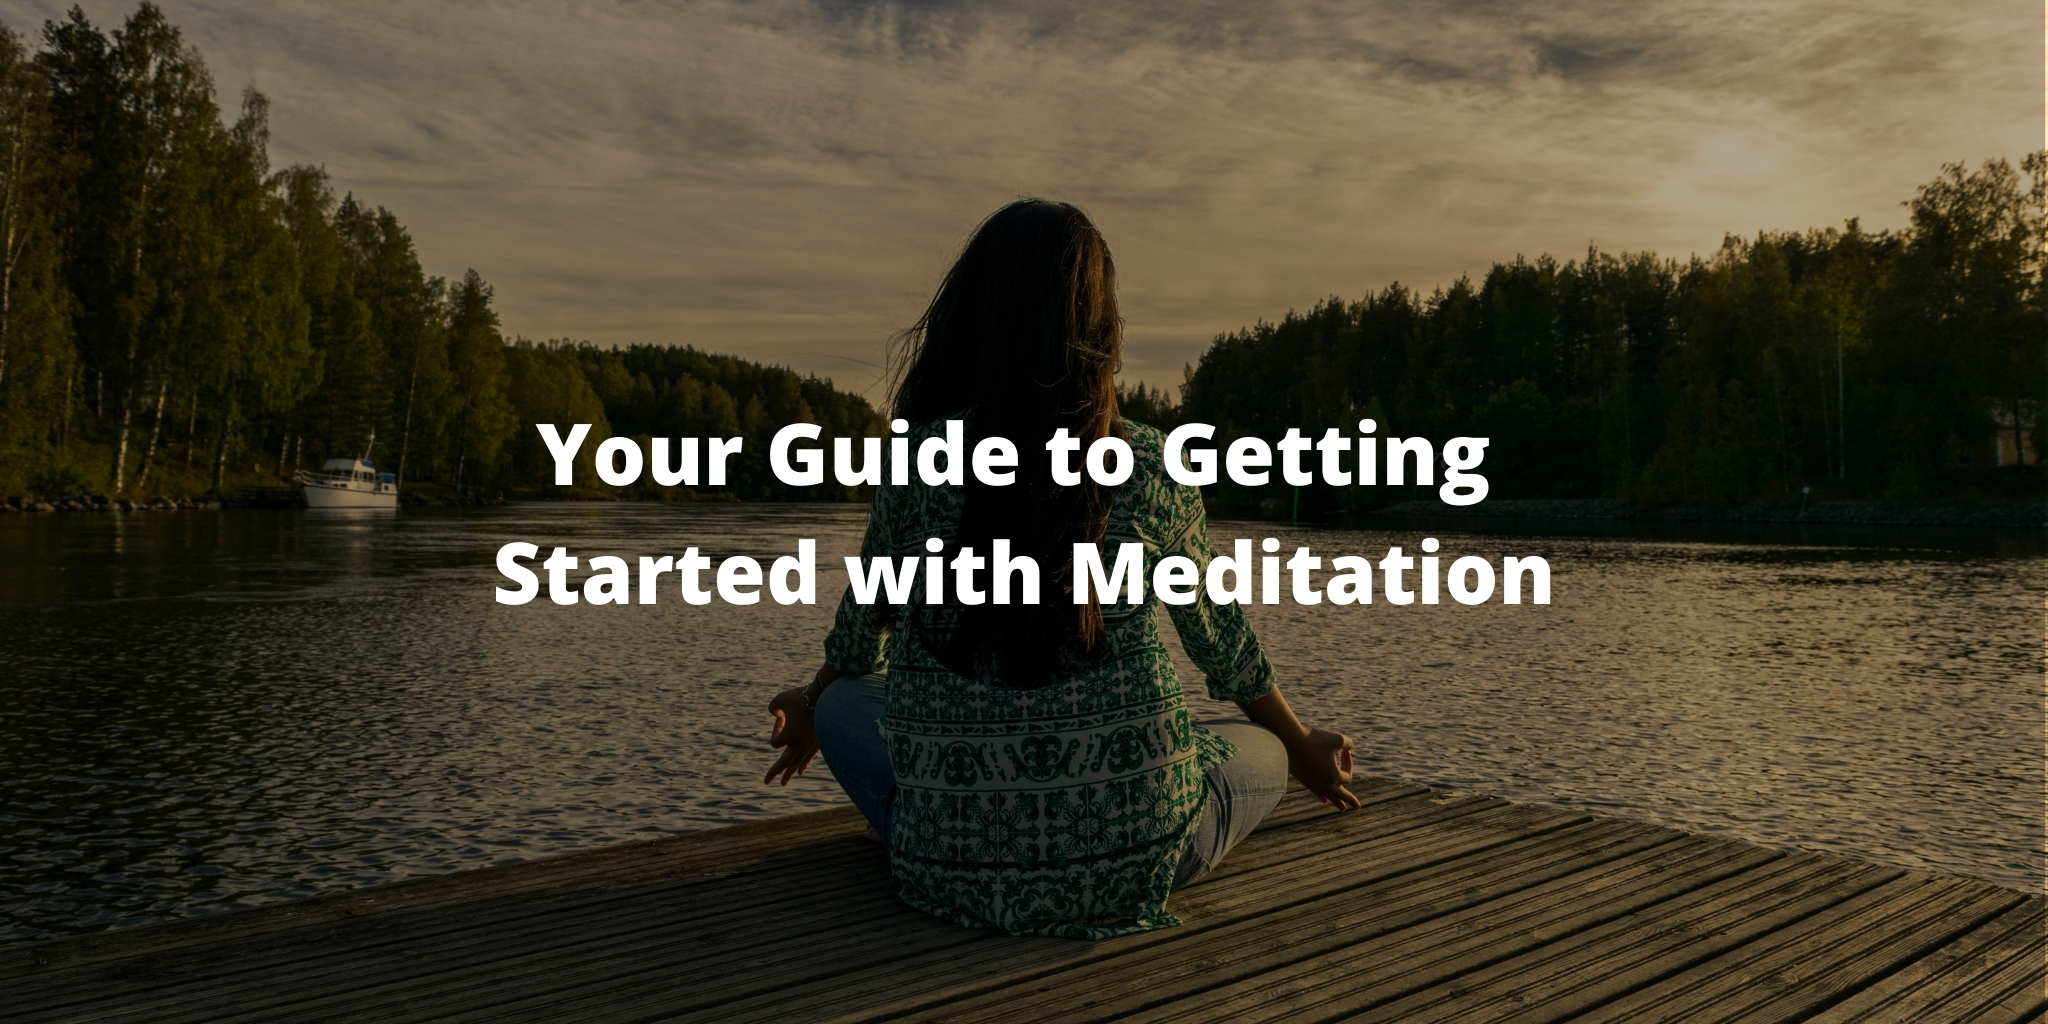 Your Guide to Getting Started with Meditation